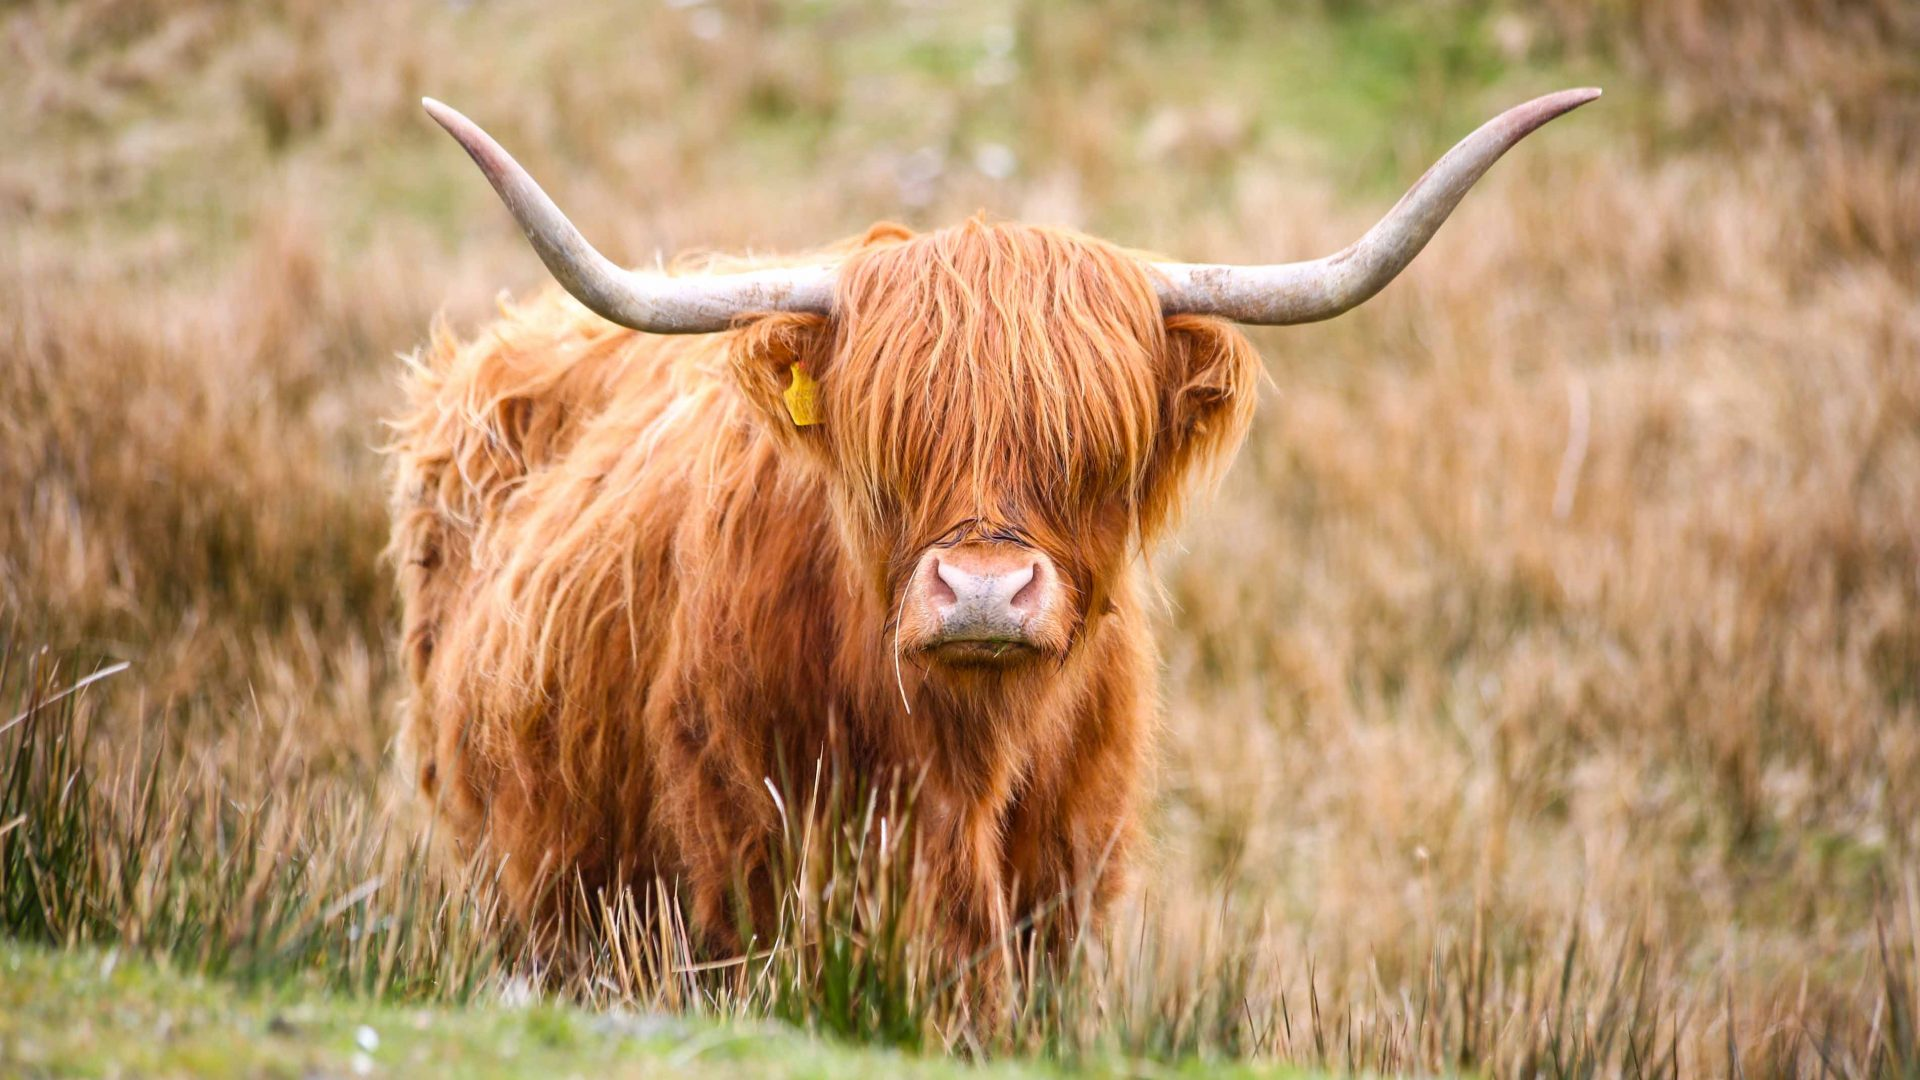 Snorkelling in Scotland: A Highland cow mooches in the fields.